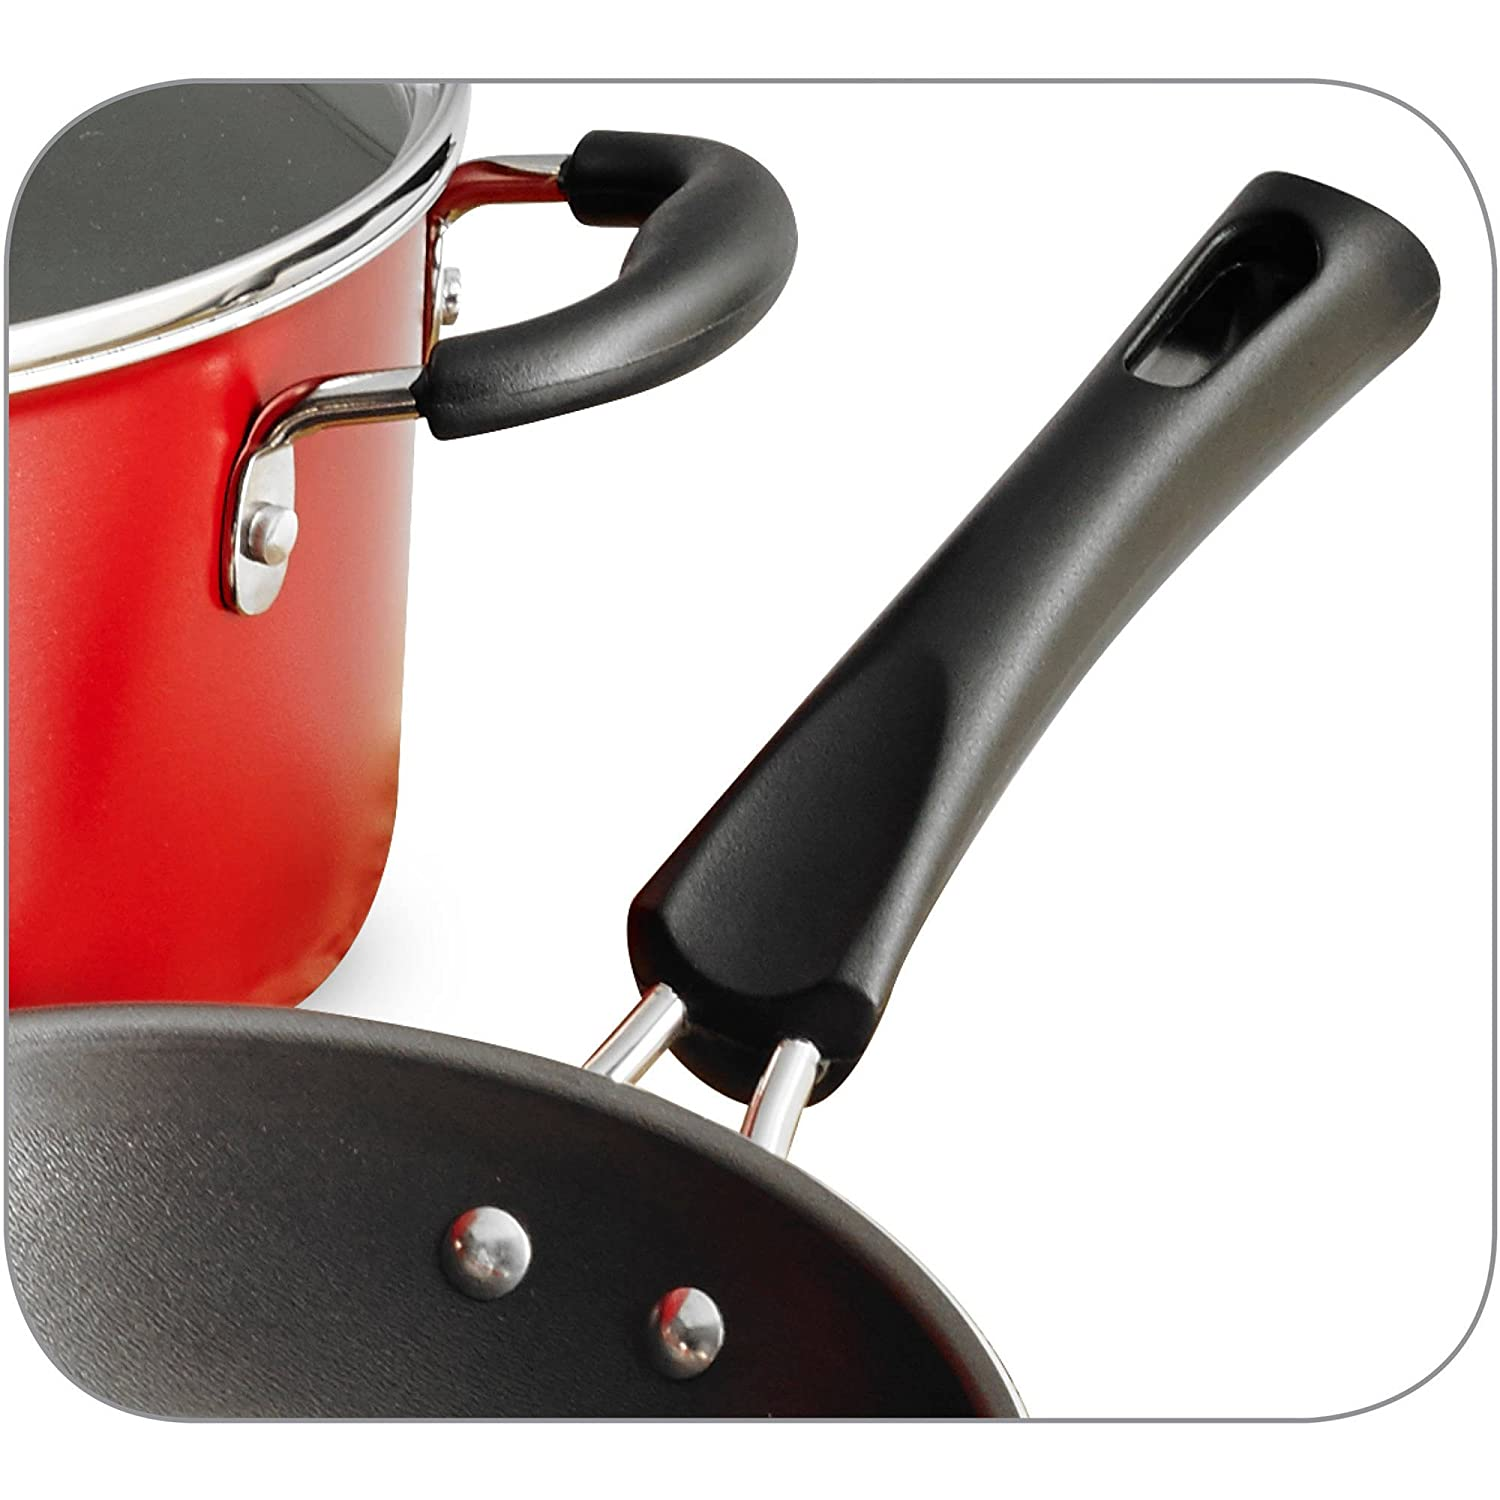 Tramontina 9-Piece Simple Cooking Nonstick Cookware Set Red